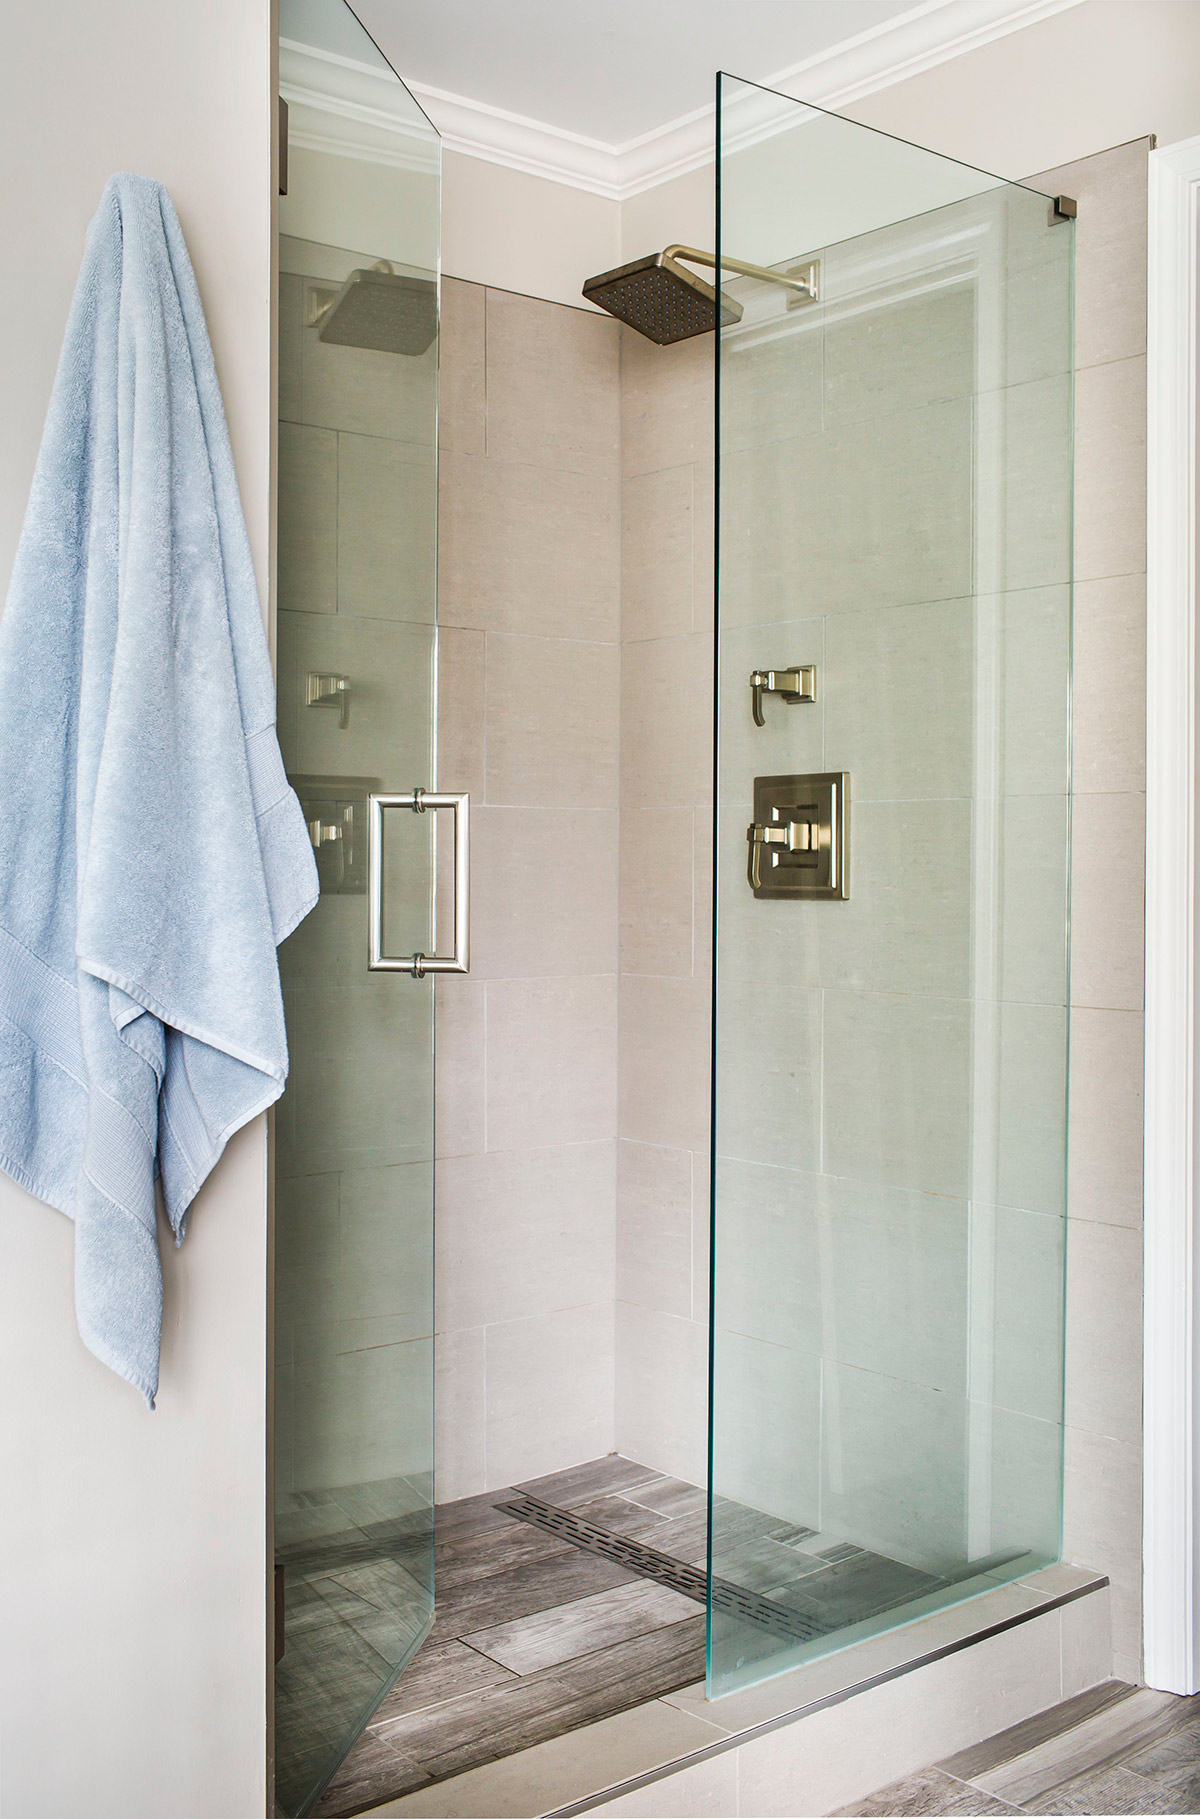 Walk-in shower with frameless glass door, wood look tile, and linear drain